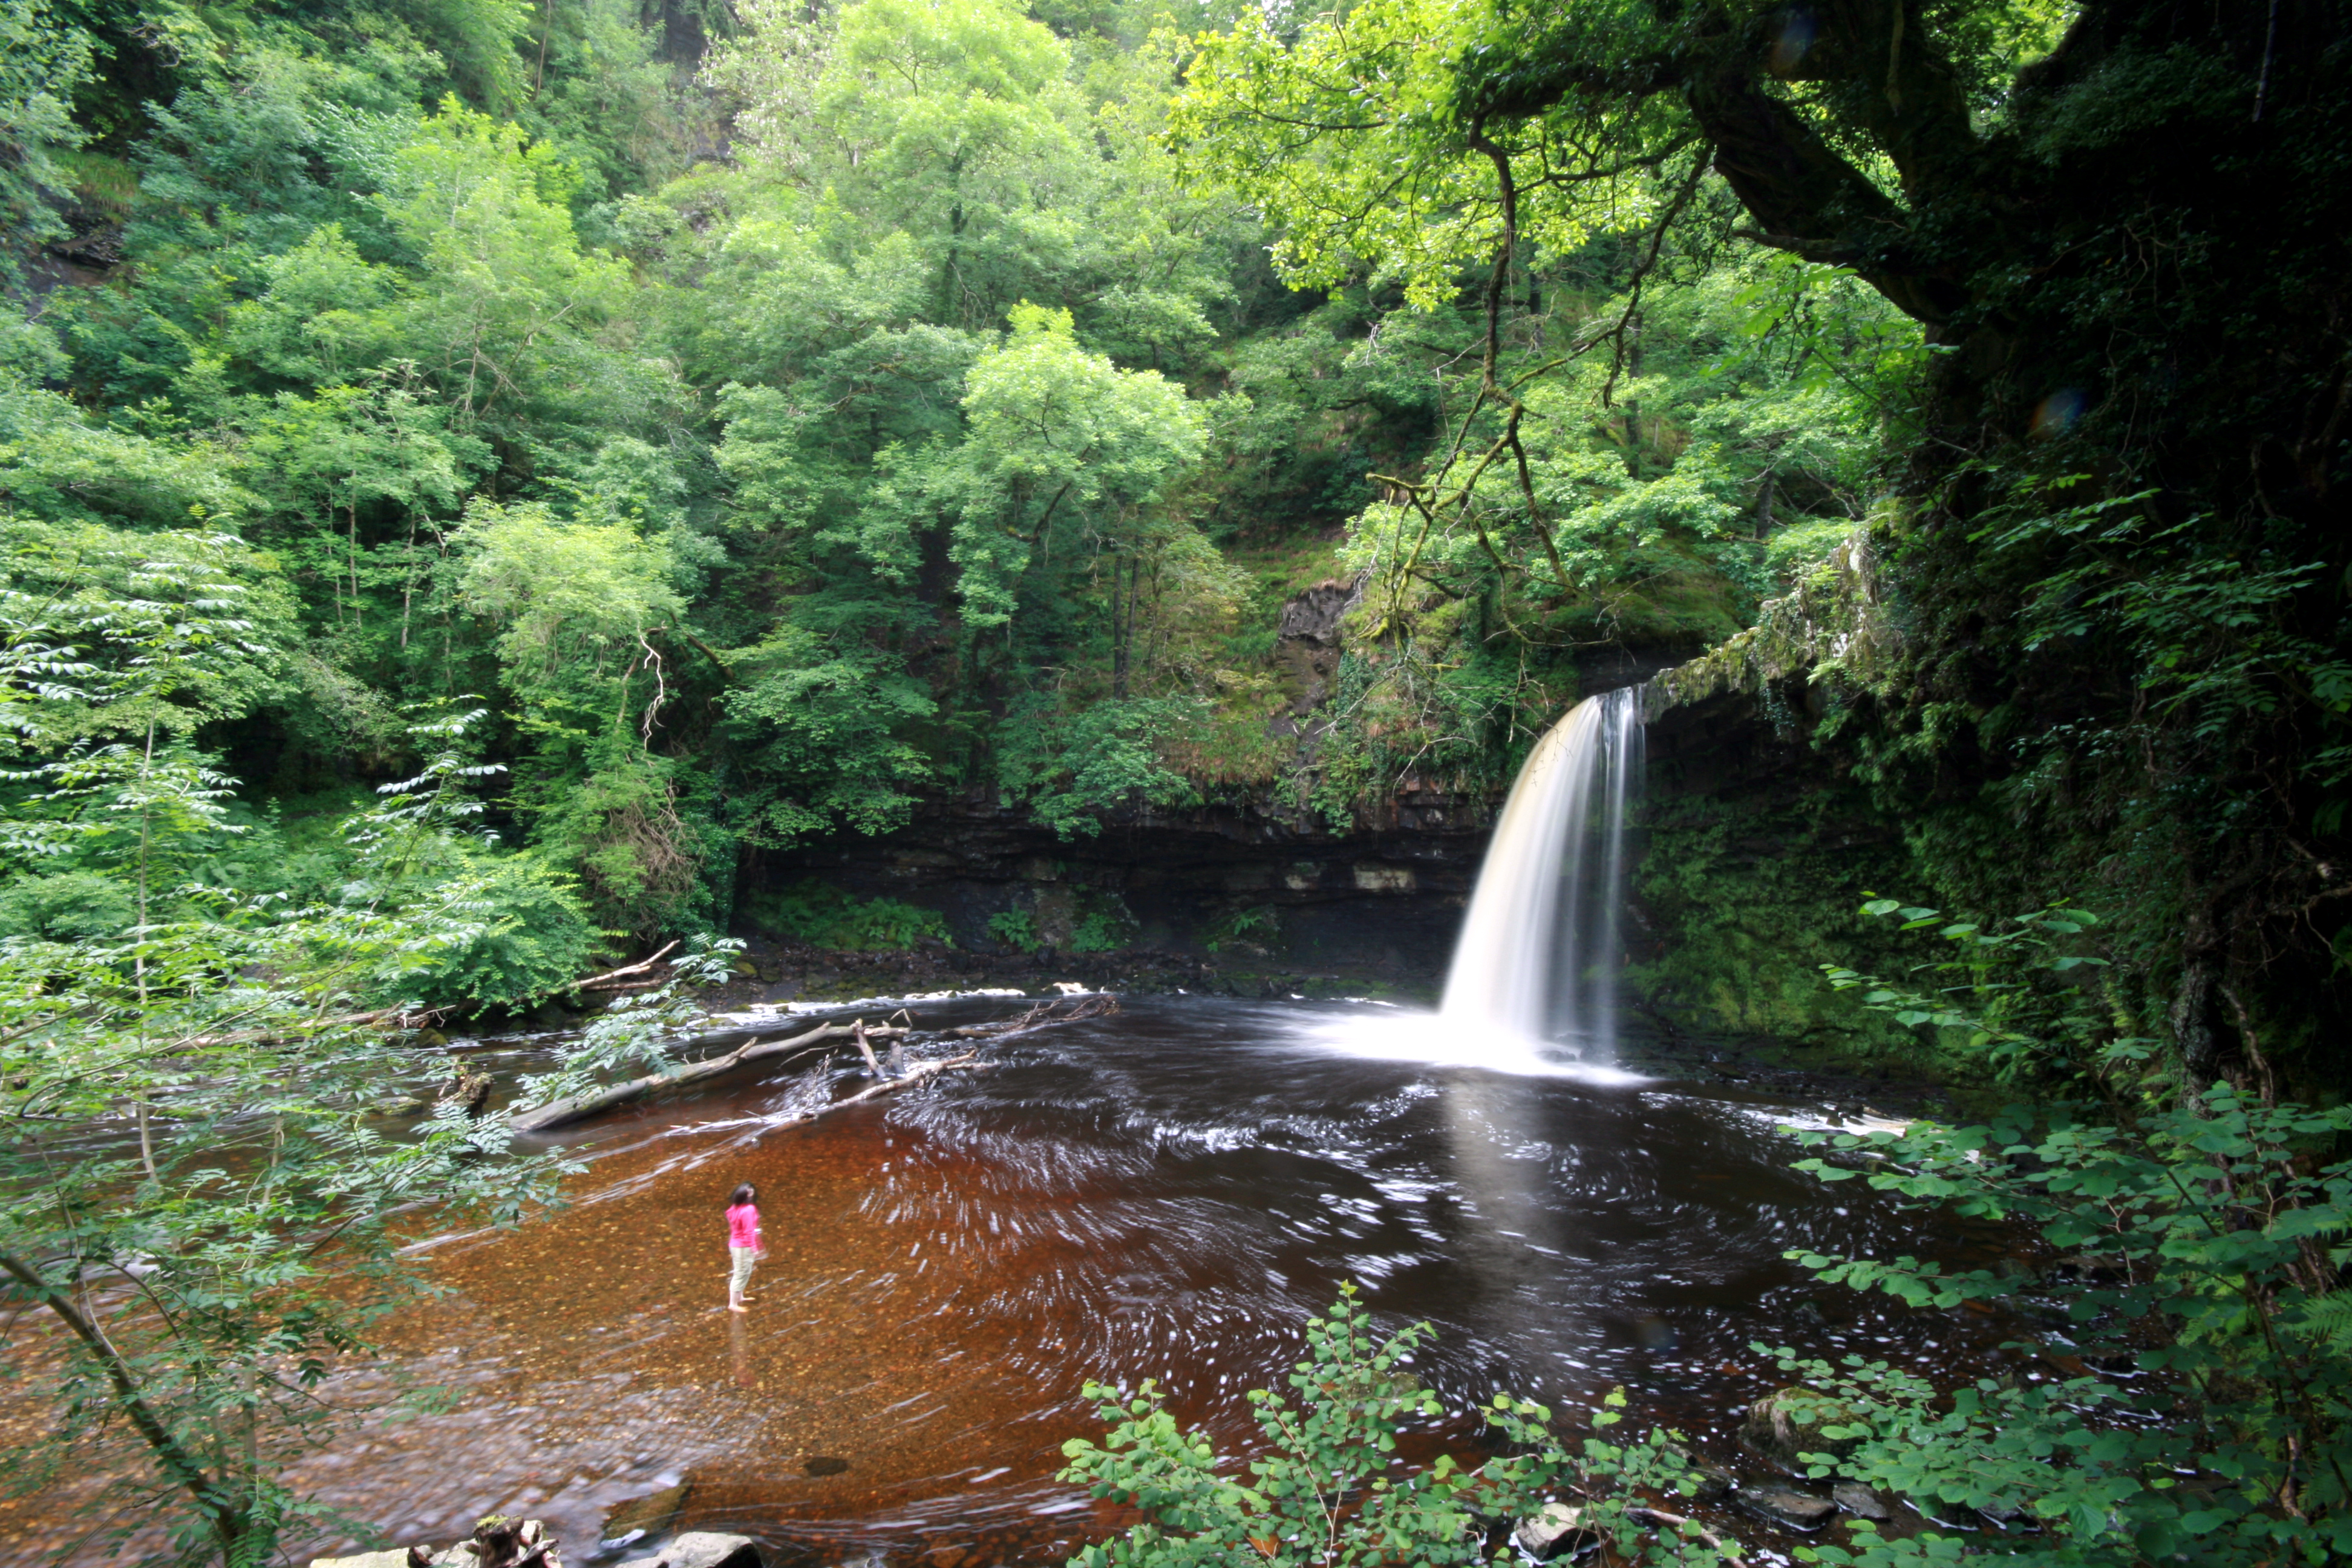 Wild Swimming Near Waterfalls The Best Locations Wild Swimming Outdoors In Rivers Lakes